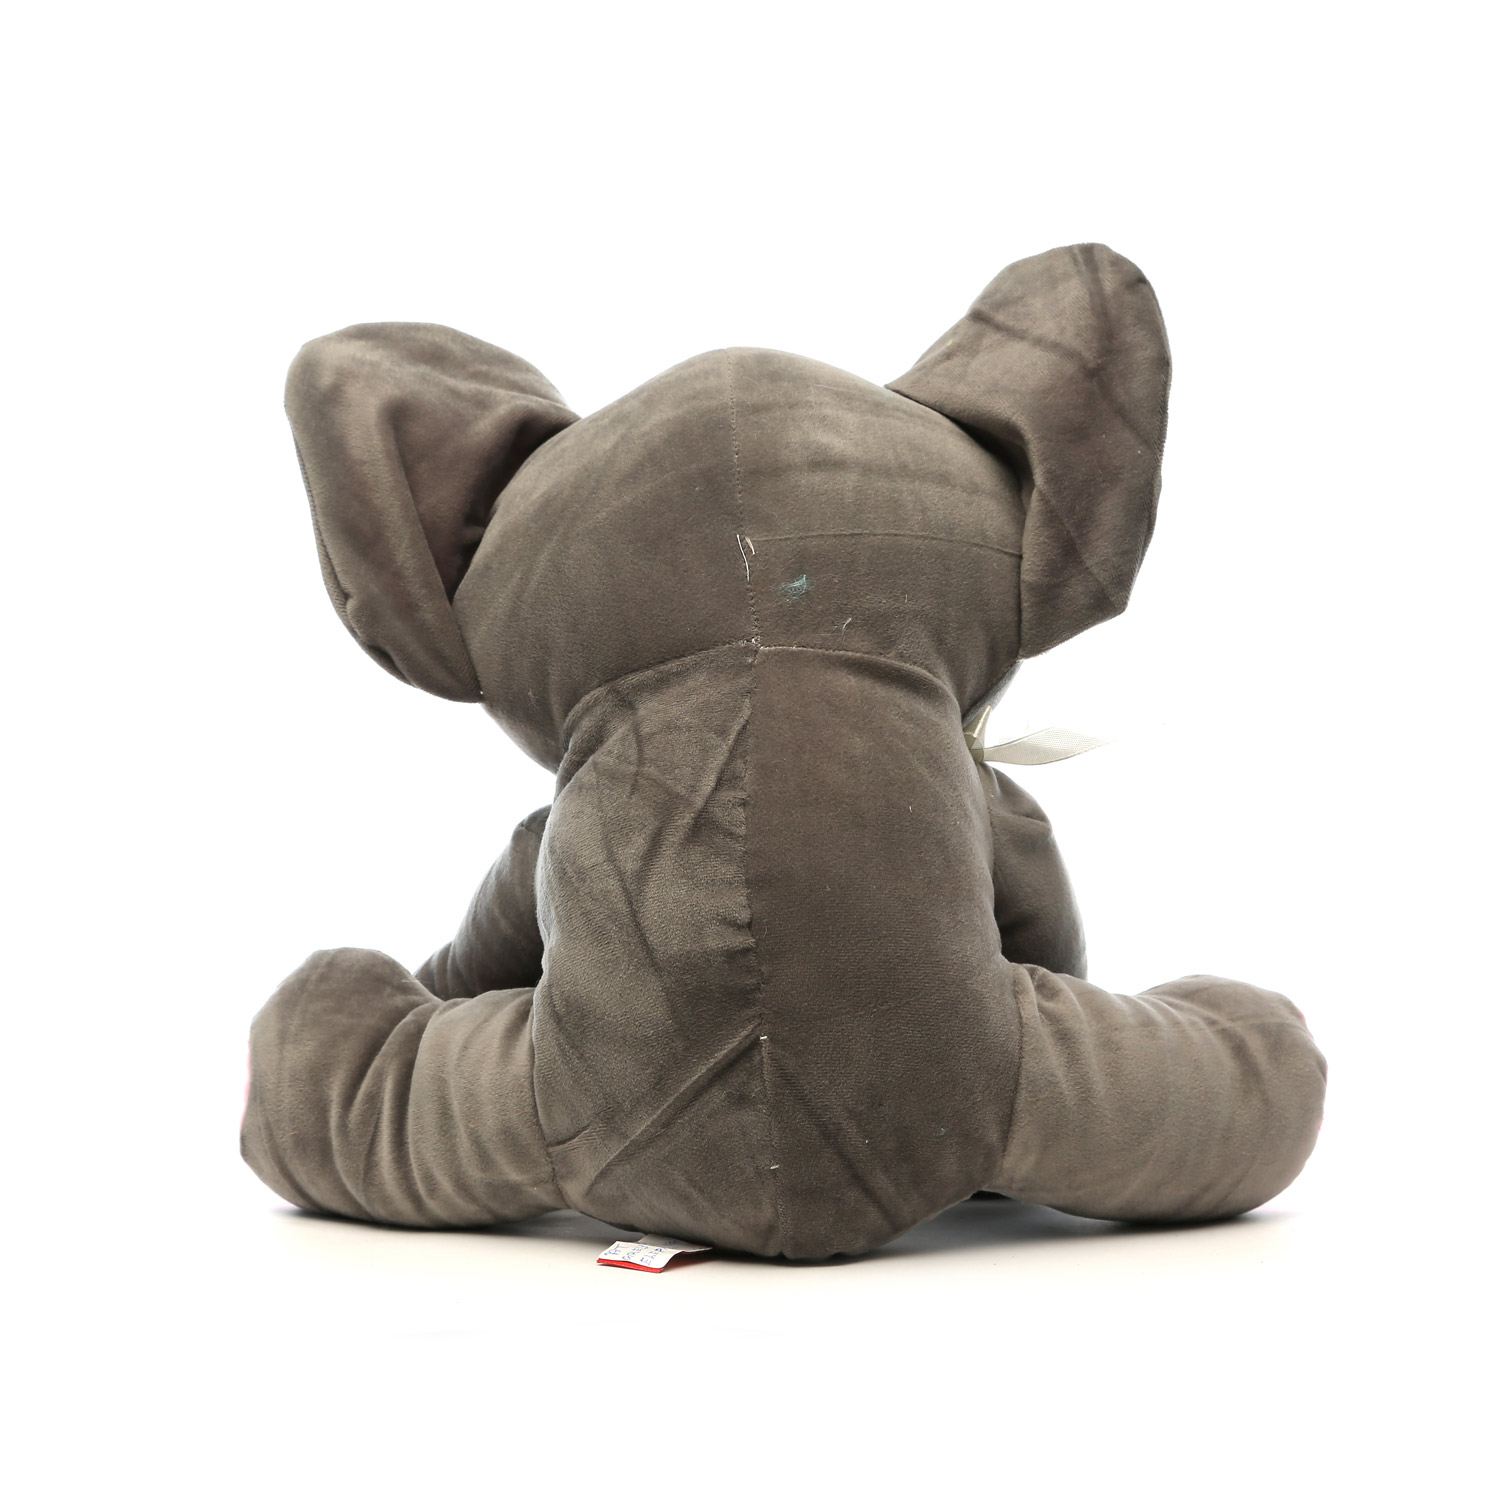 AT-1126-GREY SITTING ELEPHANT 45CM